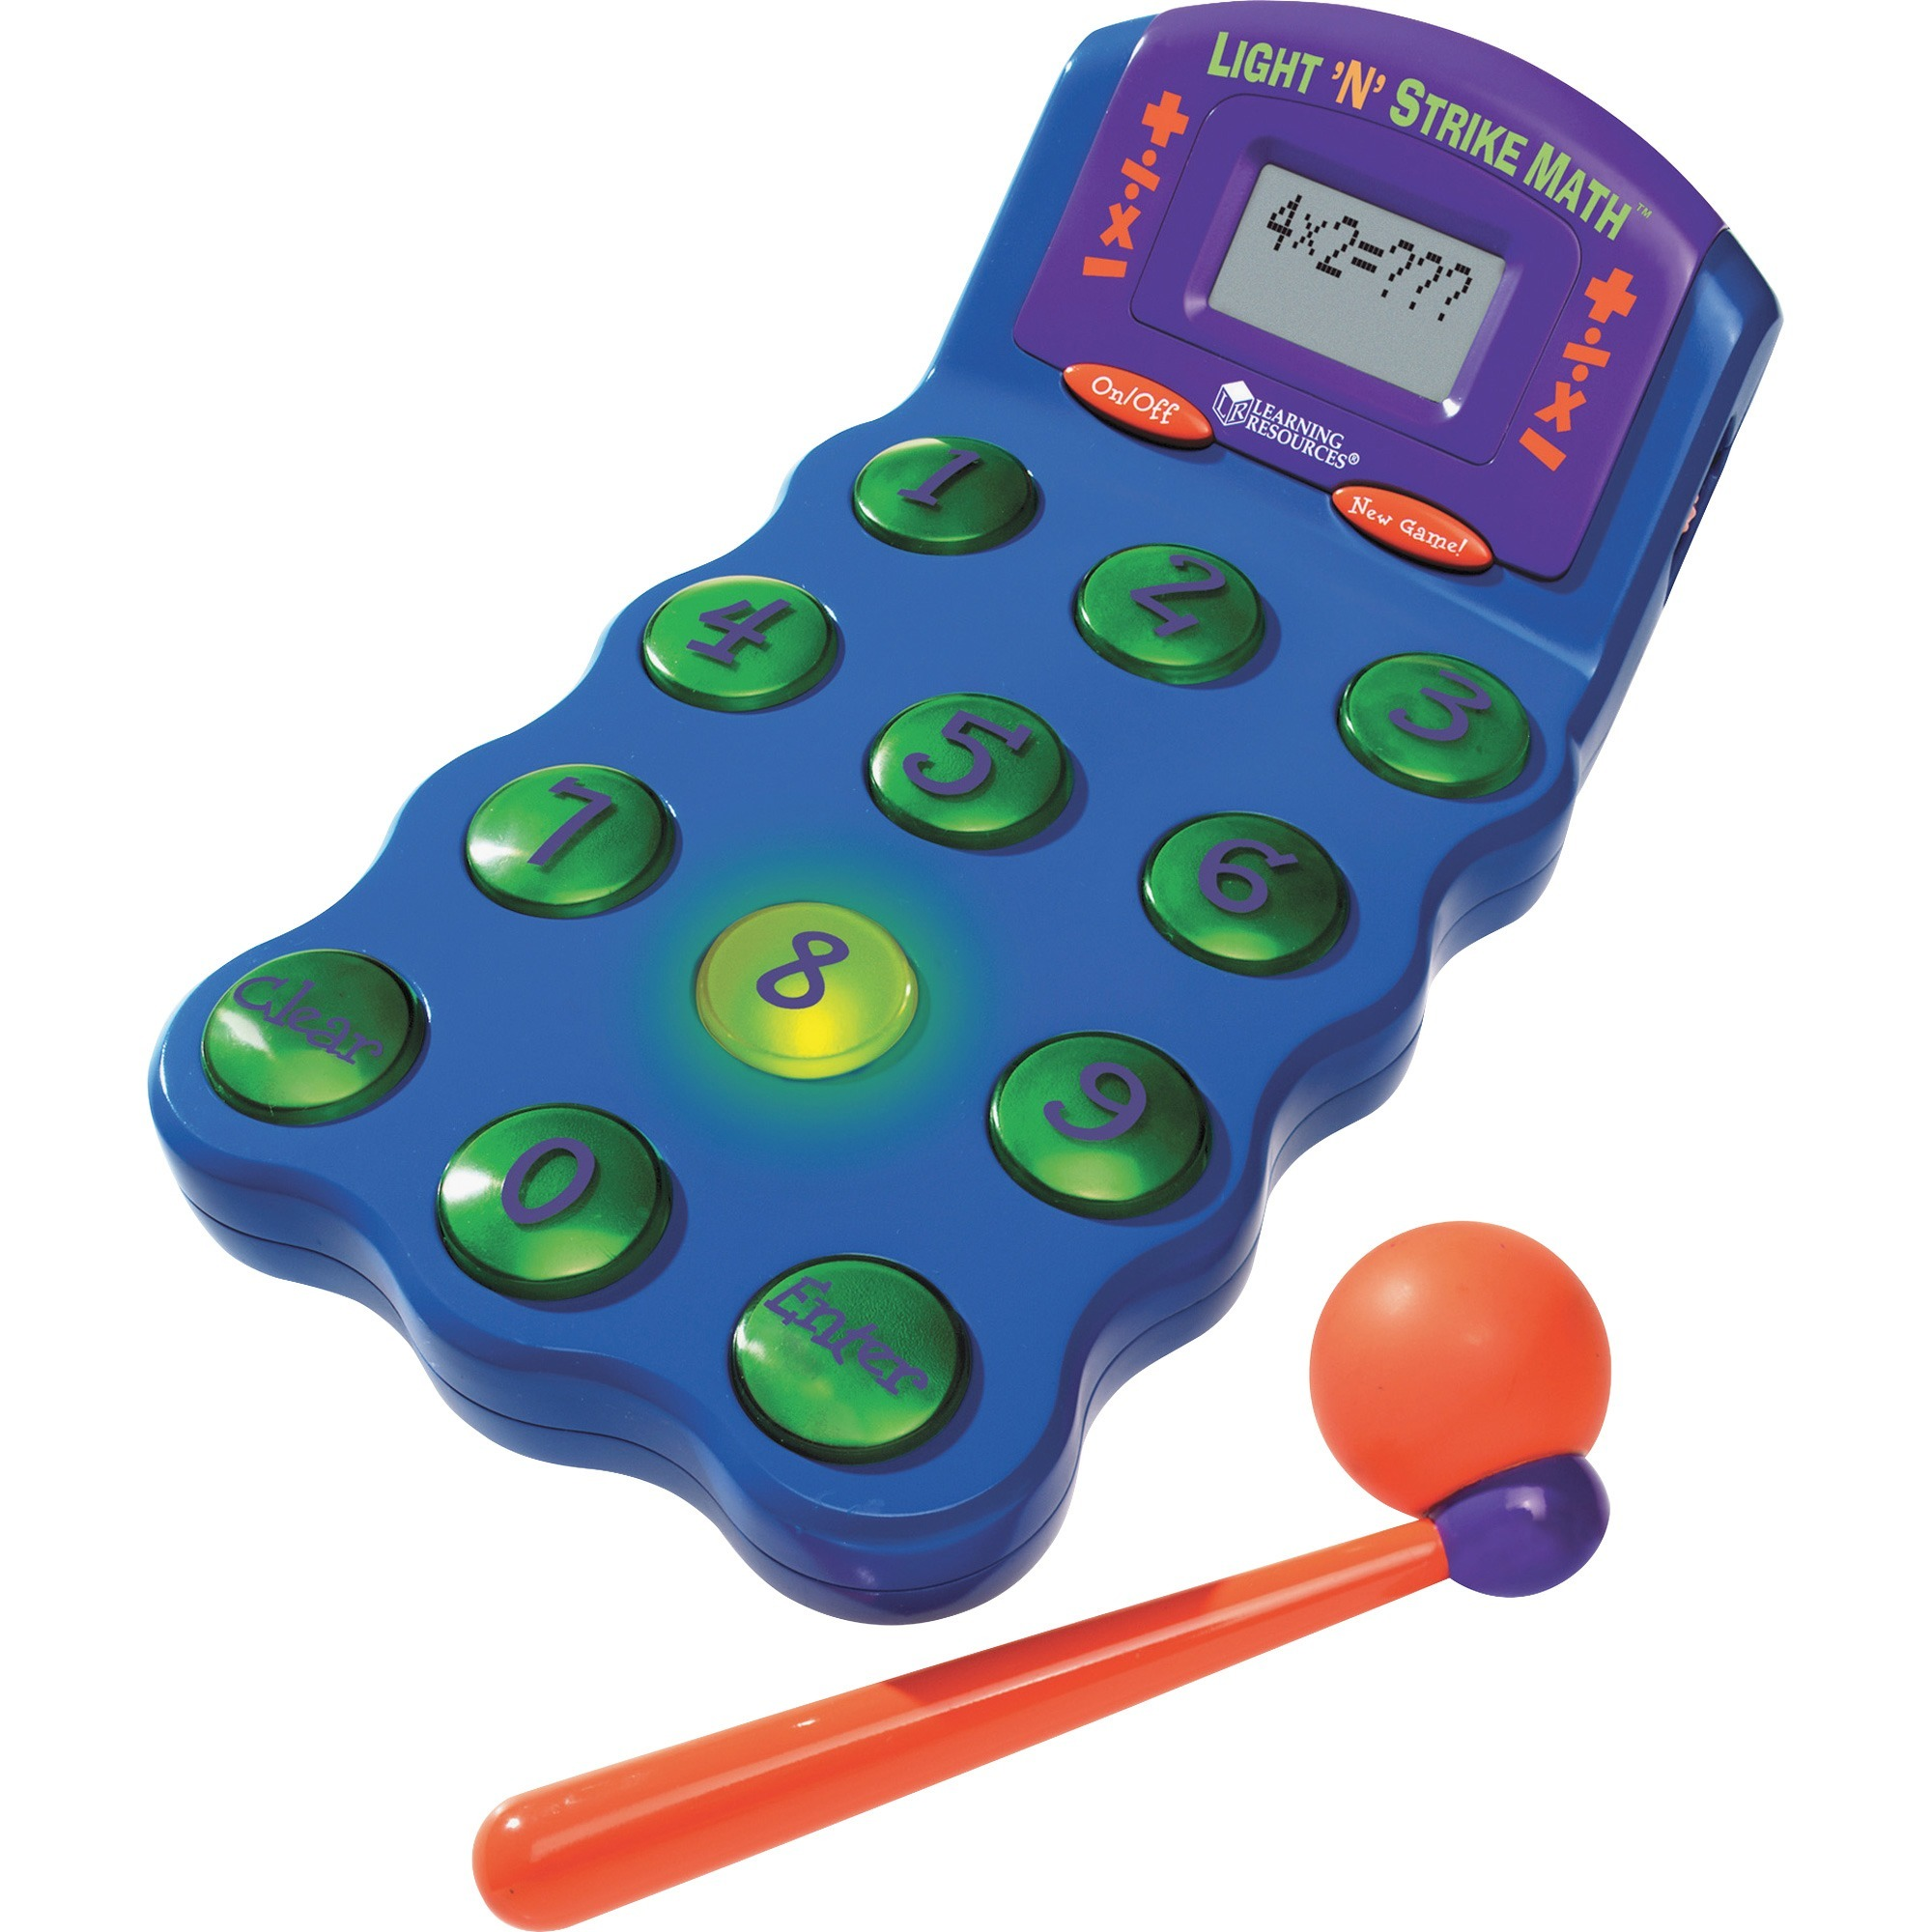 Learning Resources, LRNLER6906, Light 'N' Strike Math Game, 1 Each